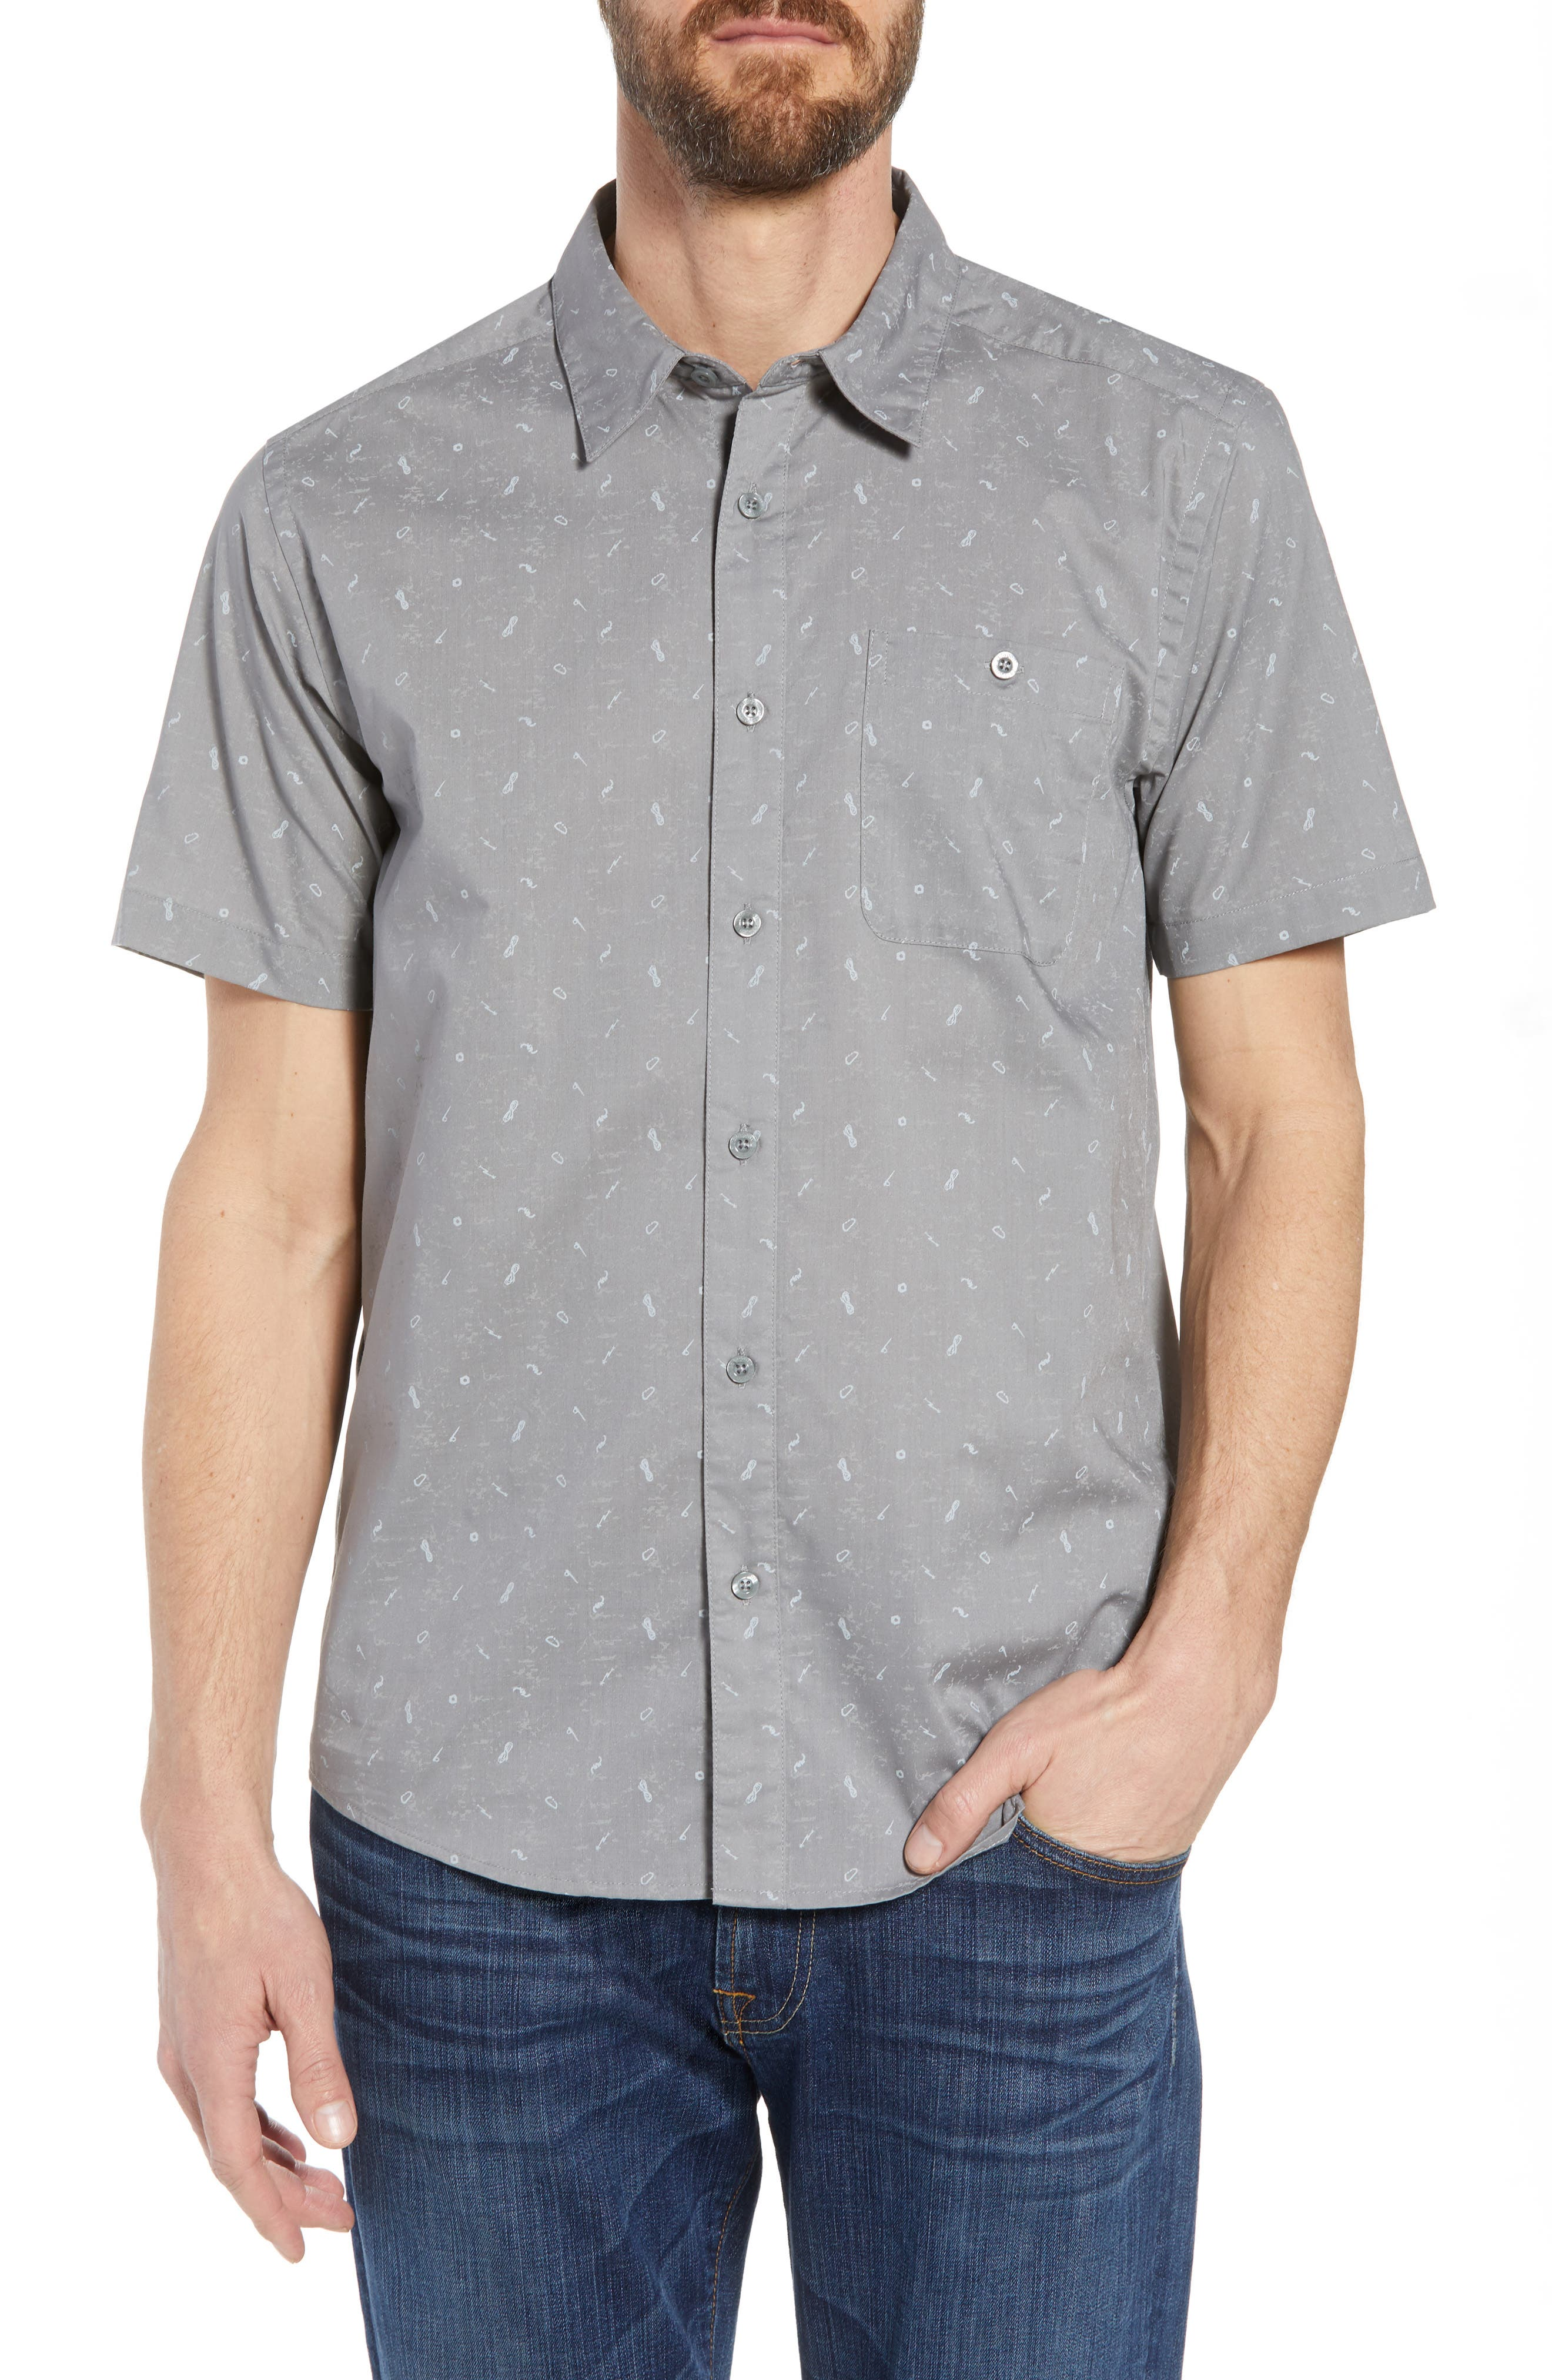 'Go To' Slim Fit Short Sleeve Sport Shirt,                         Main,                         color, 022